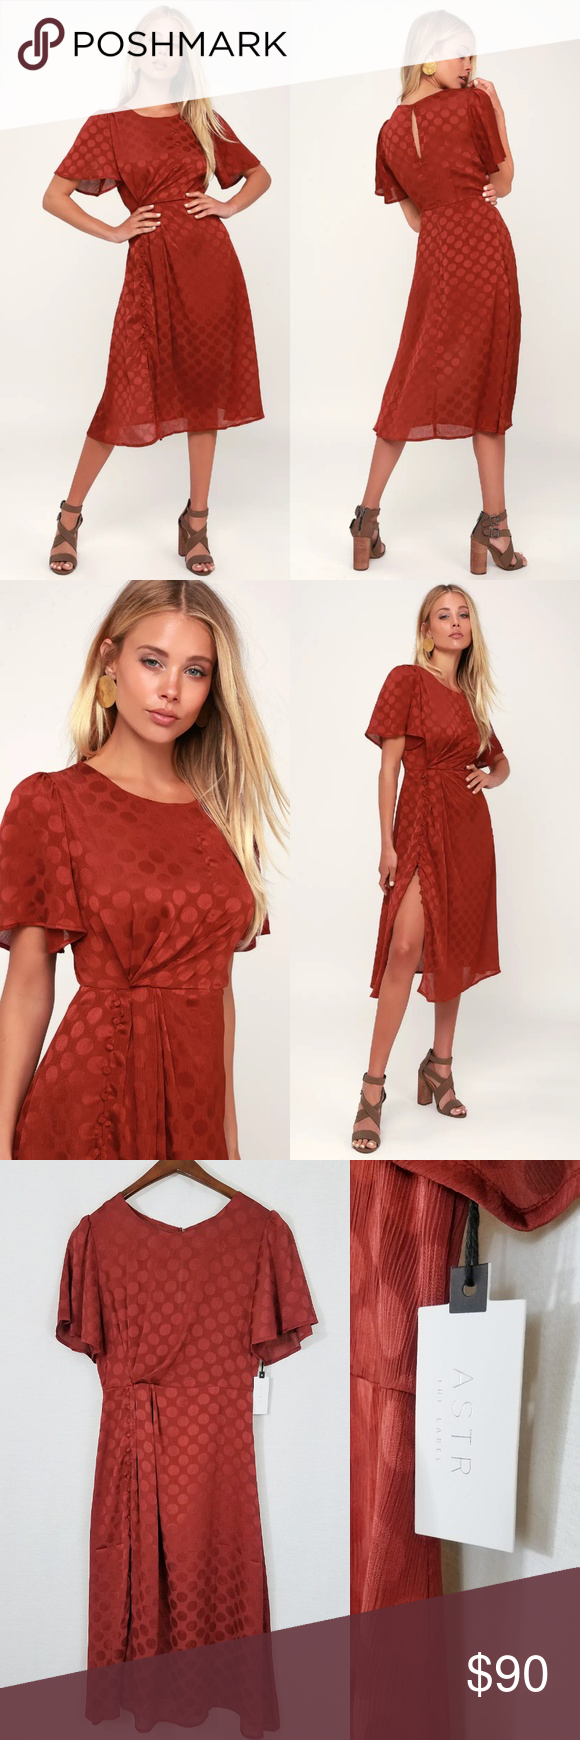 4d95c83161 ASTR Rust Red Button Up Fall Small Womens Midi The ASTR the Label Ebony  Rust Red